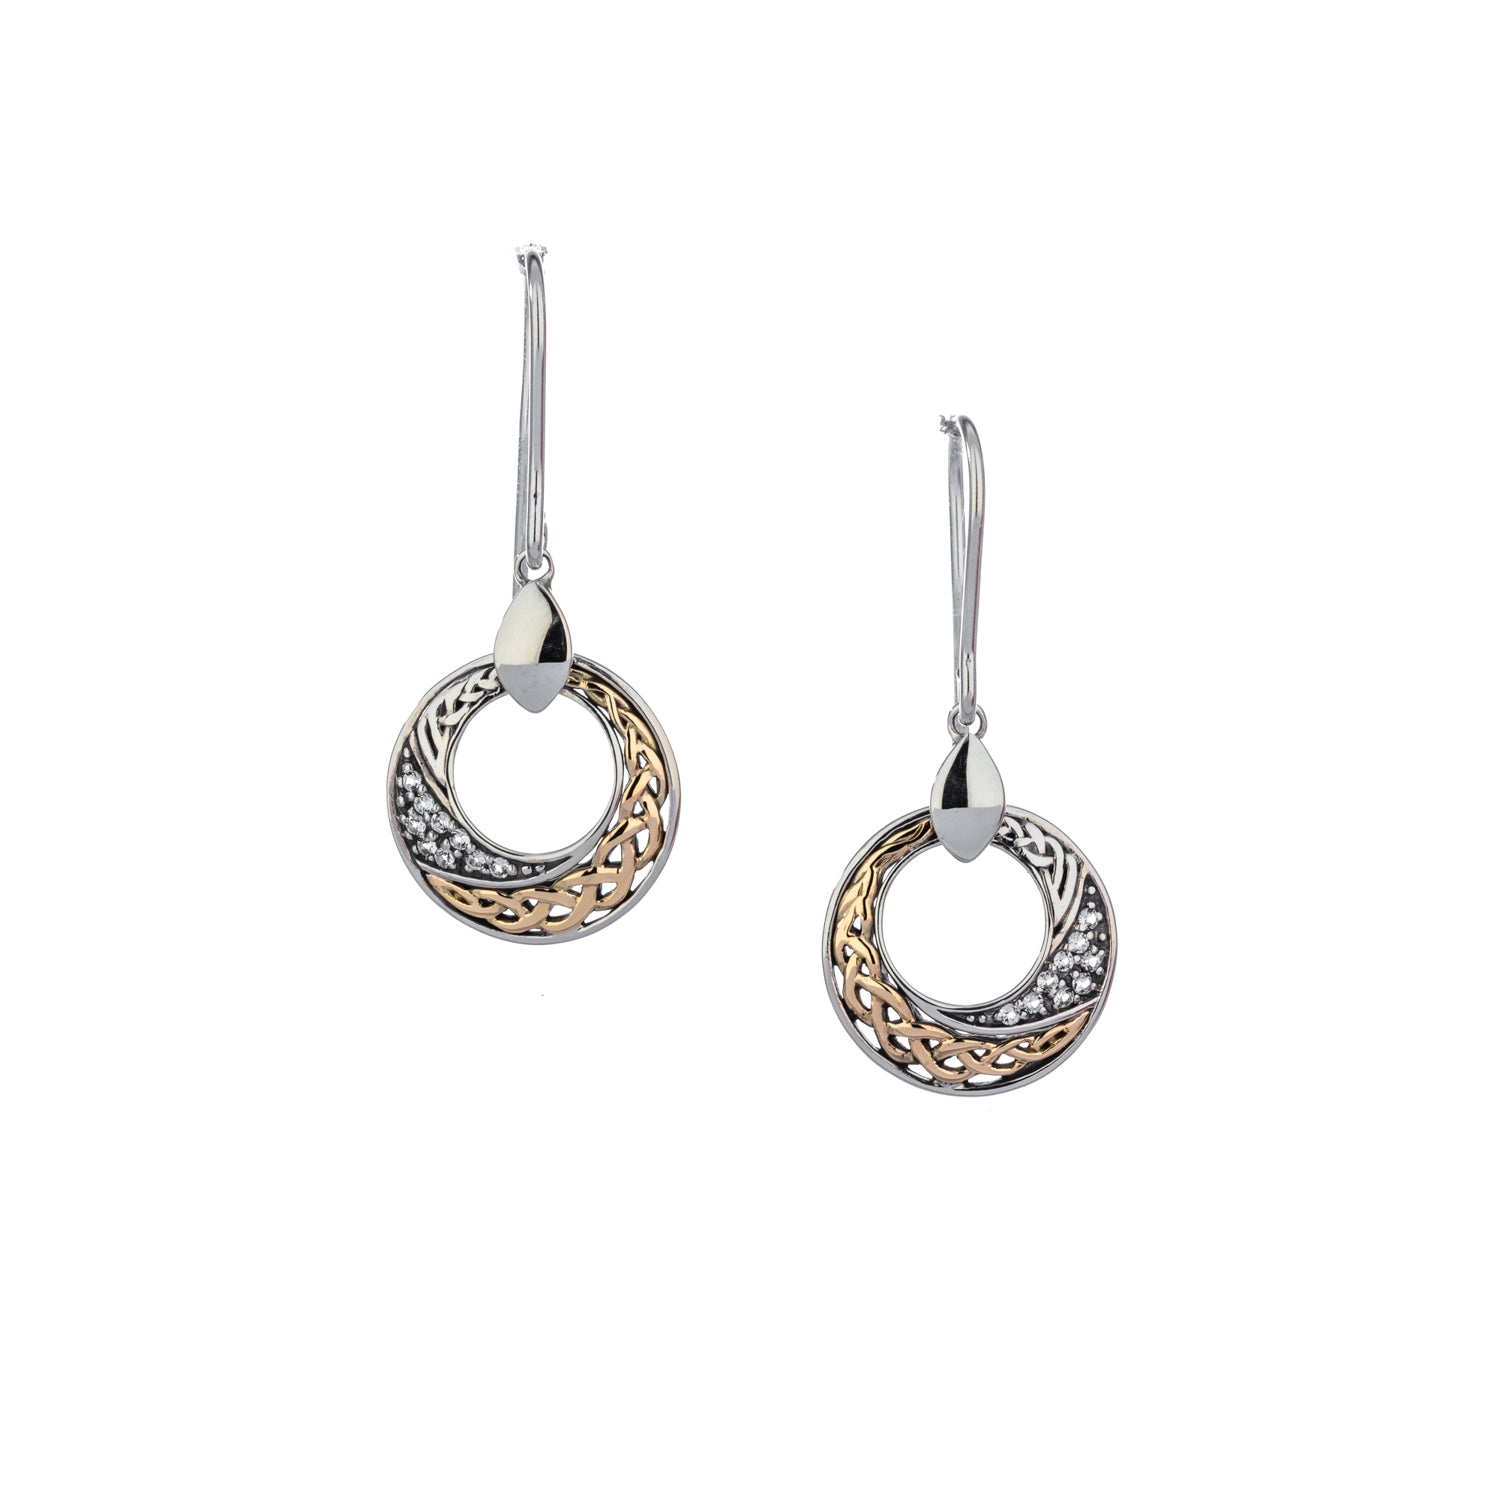 Earrings 10k Eternity White Topaz Comet Round Hook Earrings from welch and company jewelers near syracuse ny